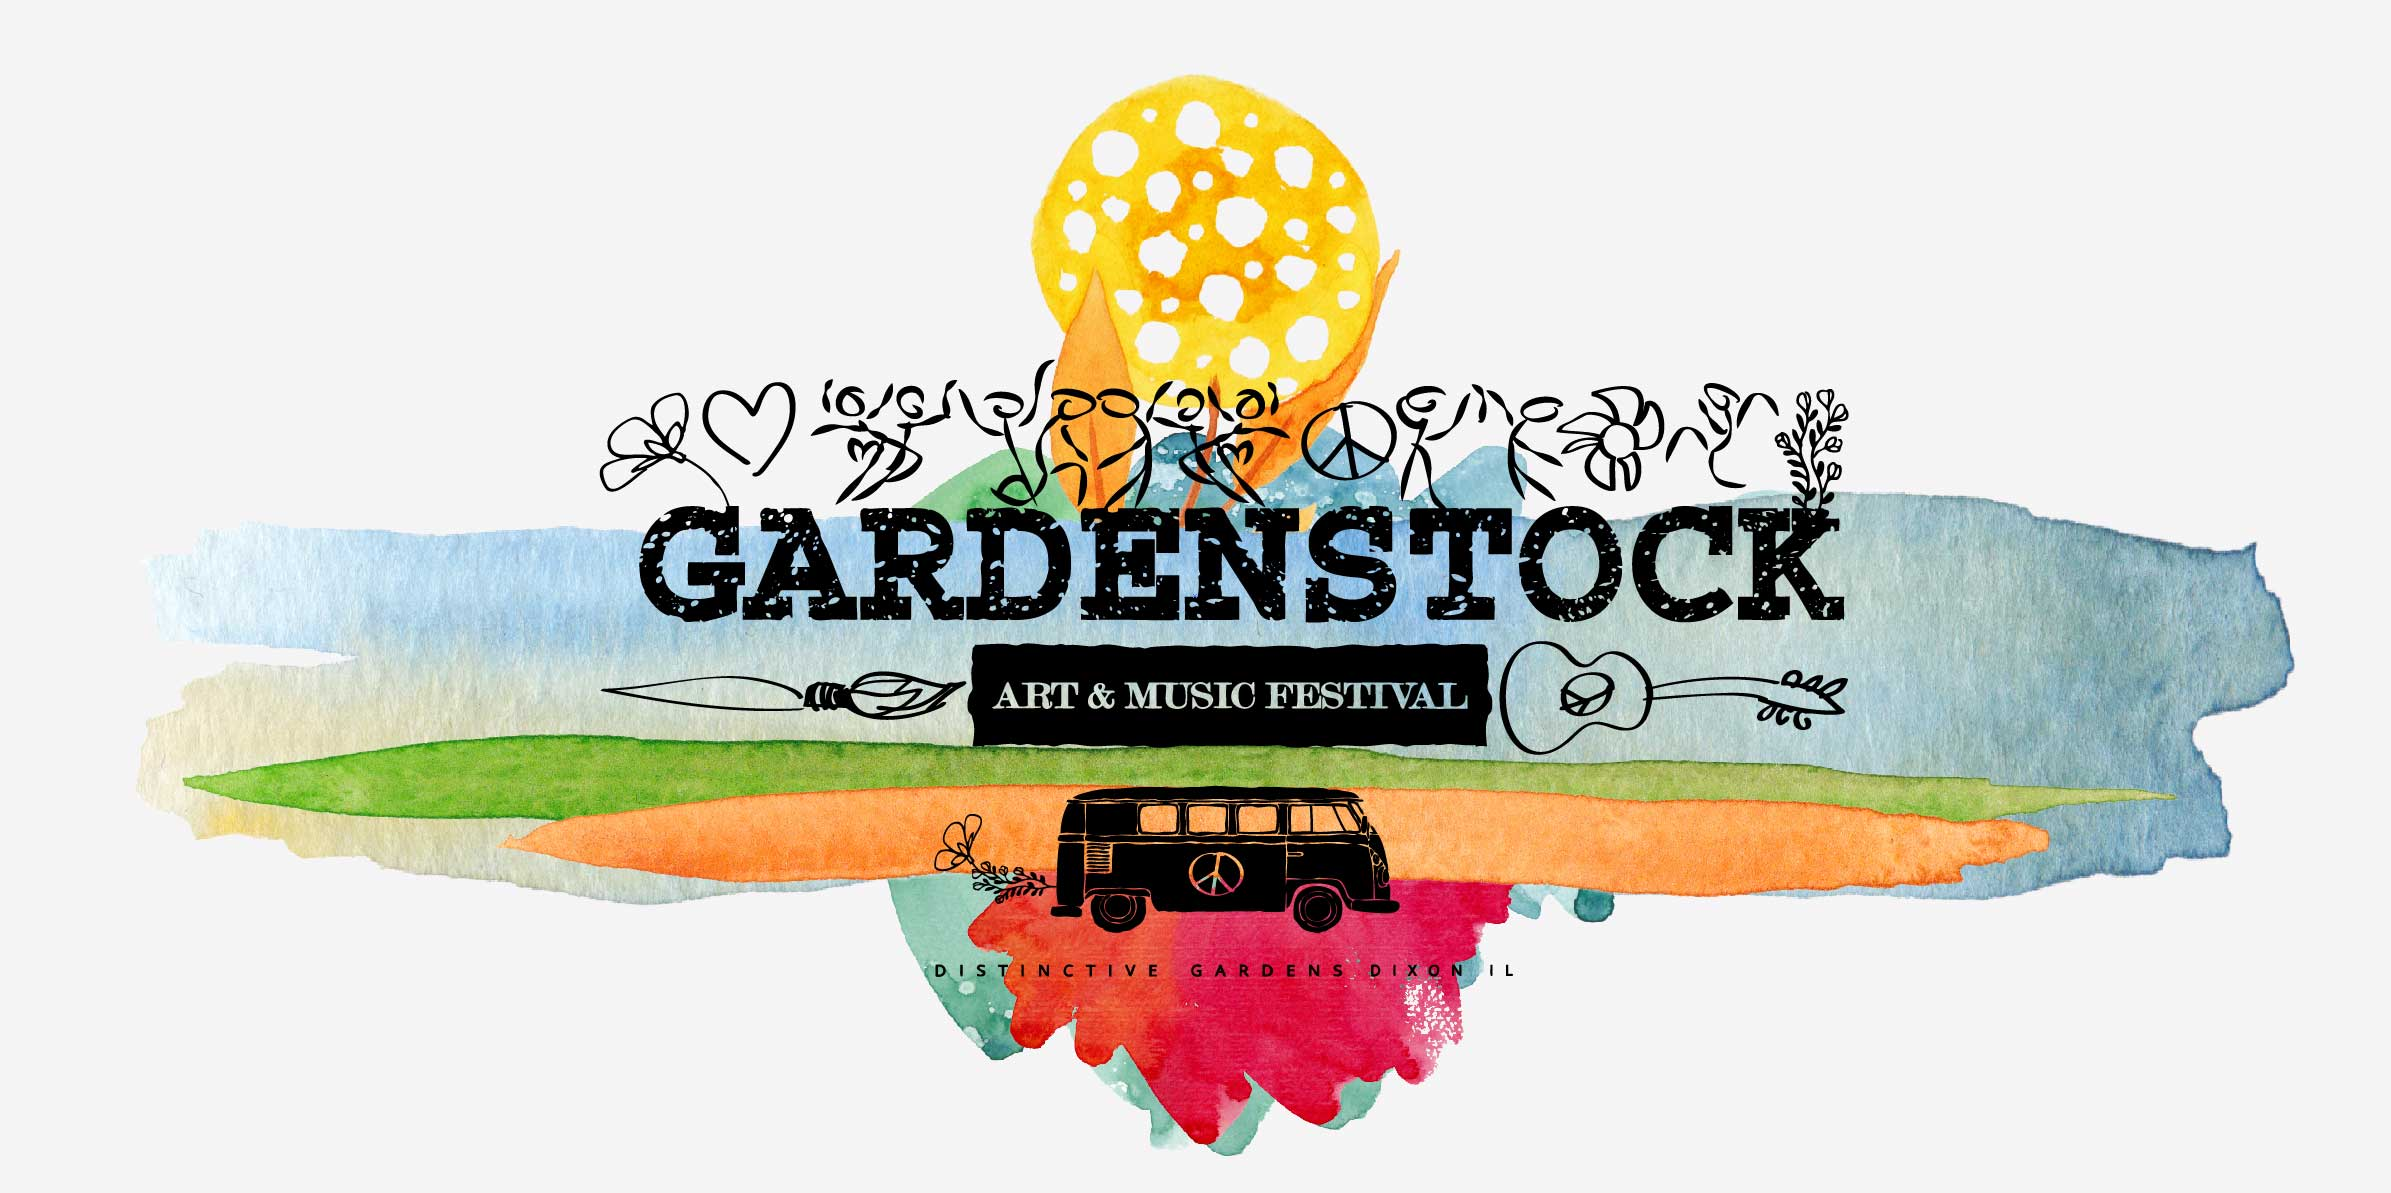 2017 Gardenstock Art & Music Festival News!